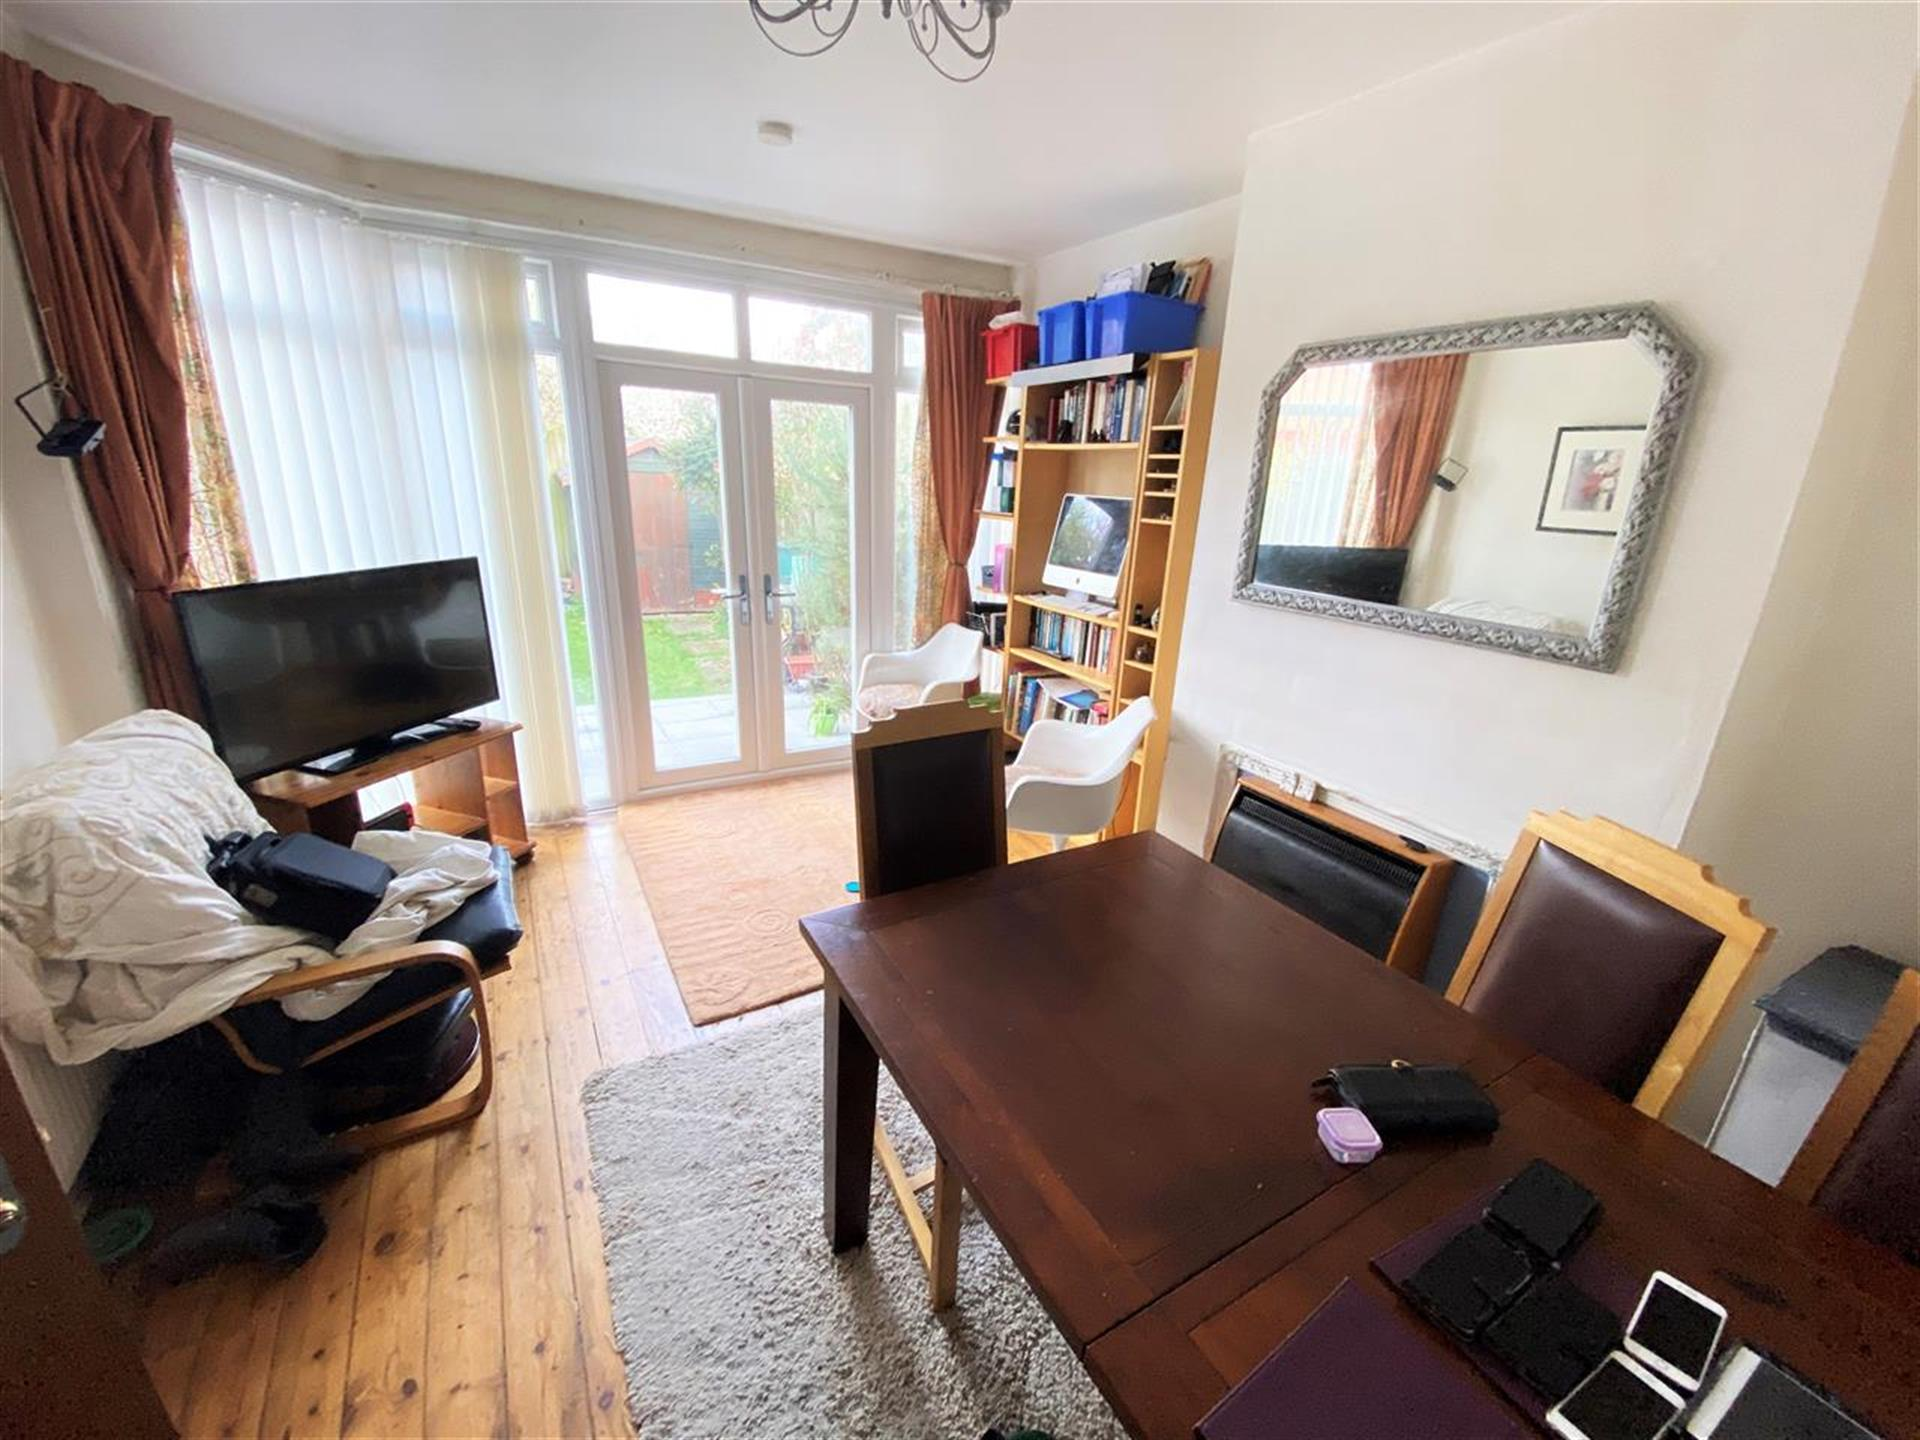 4 Bedroom Semi-detached House For Sale - Reception Room Two